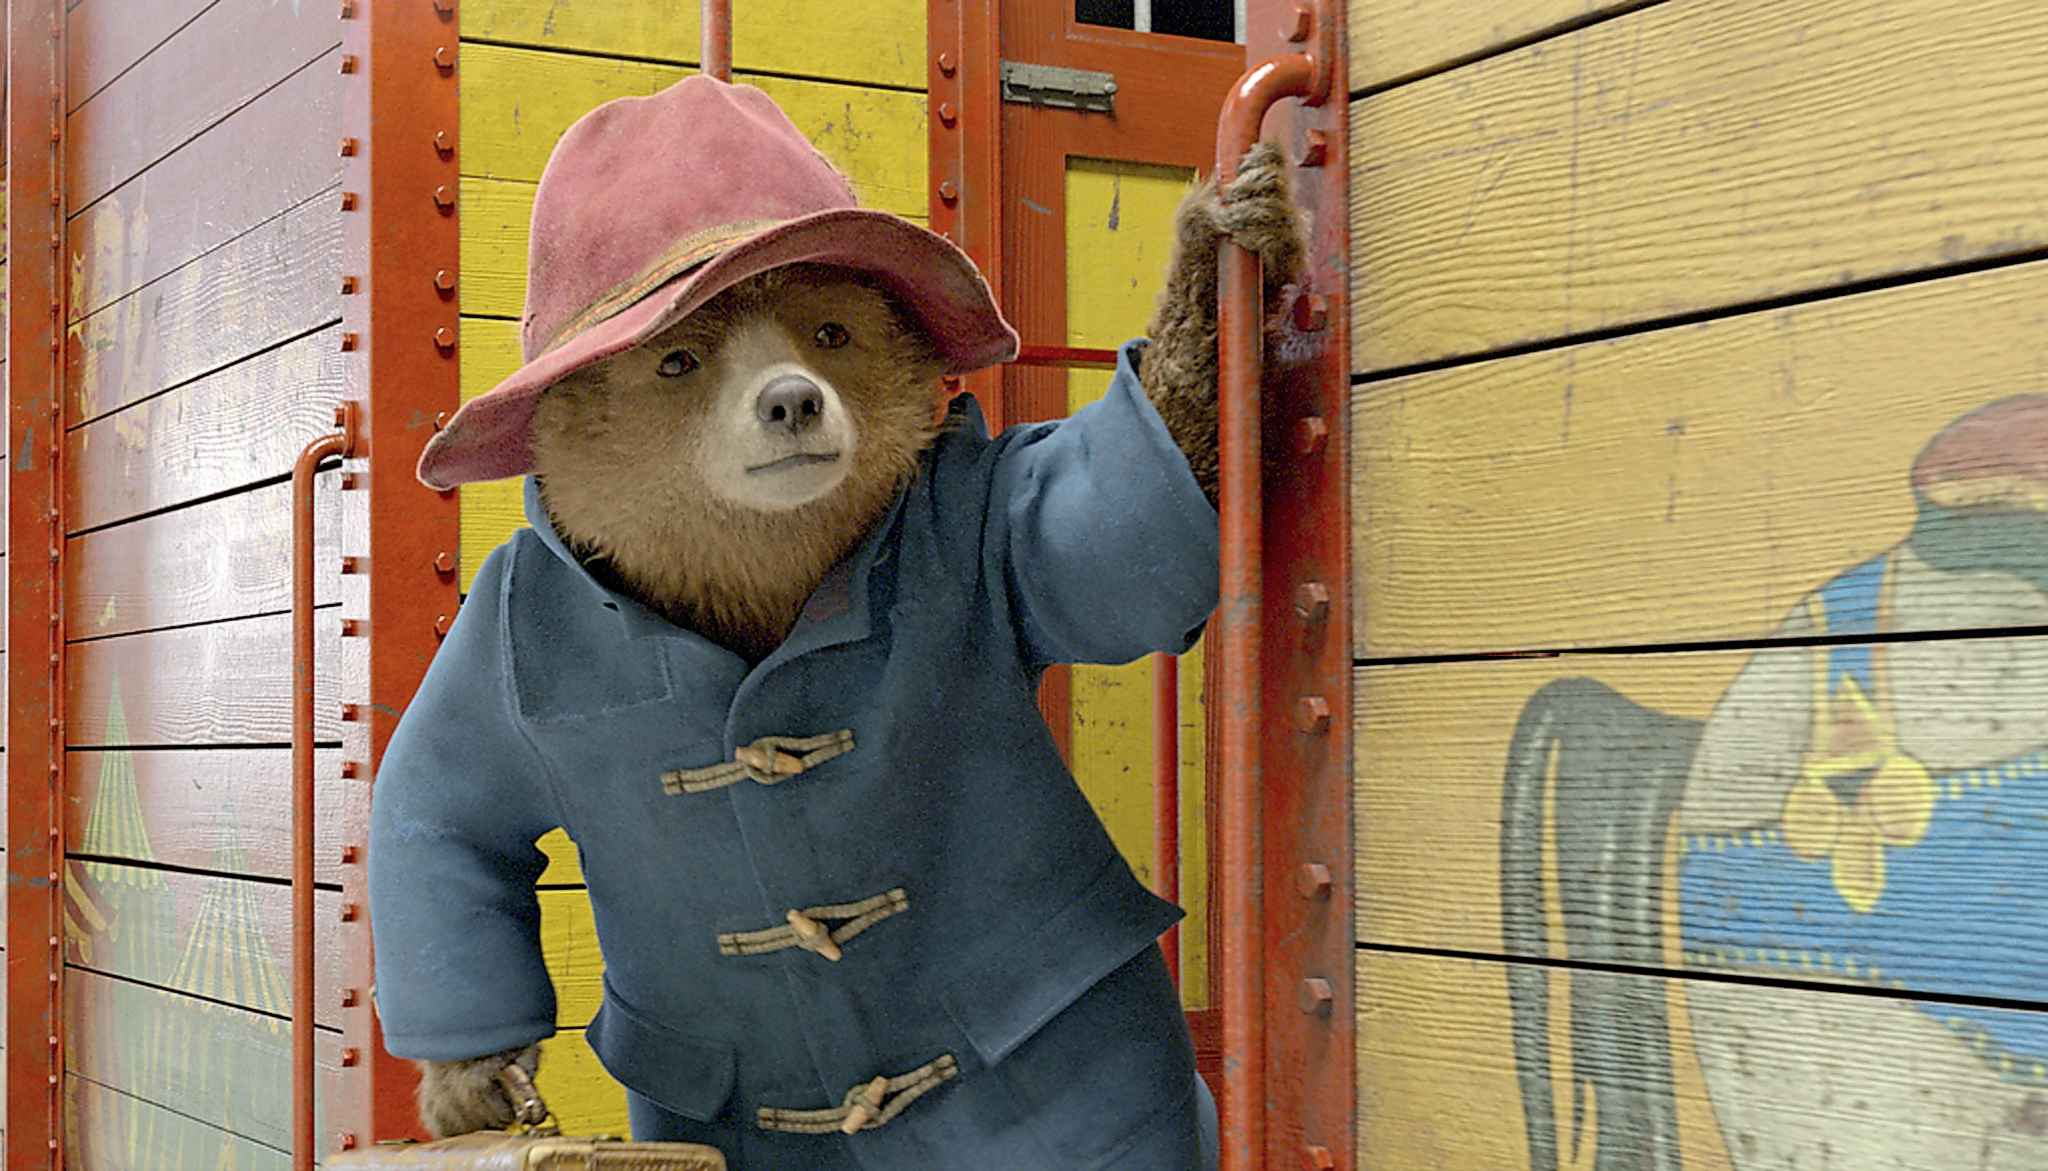 And finally, there's Paddington himself, prone to mild catastrophes but hugely well-intentioned and eternally optimistic. (Warner Bros. Pictures via AP)